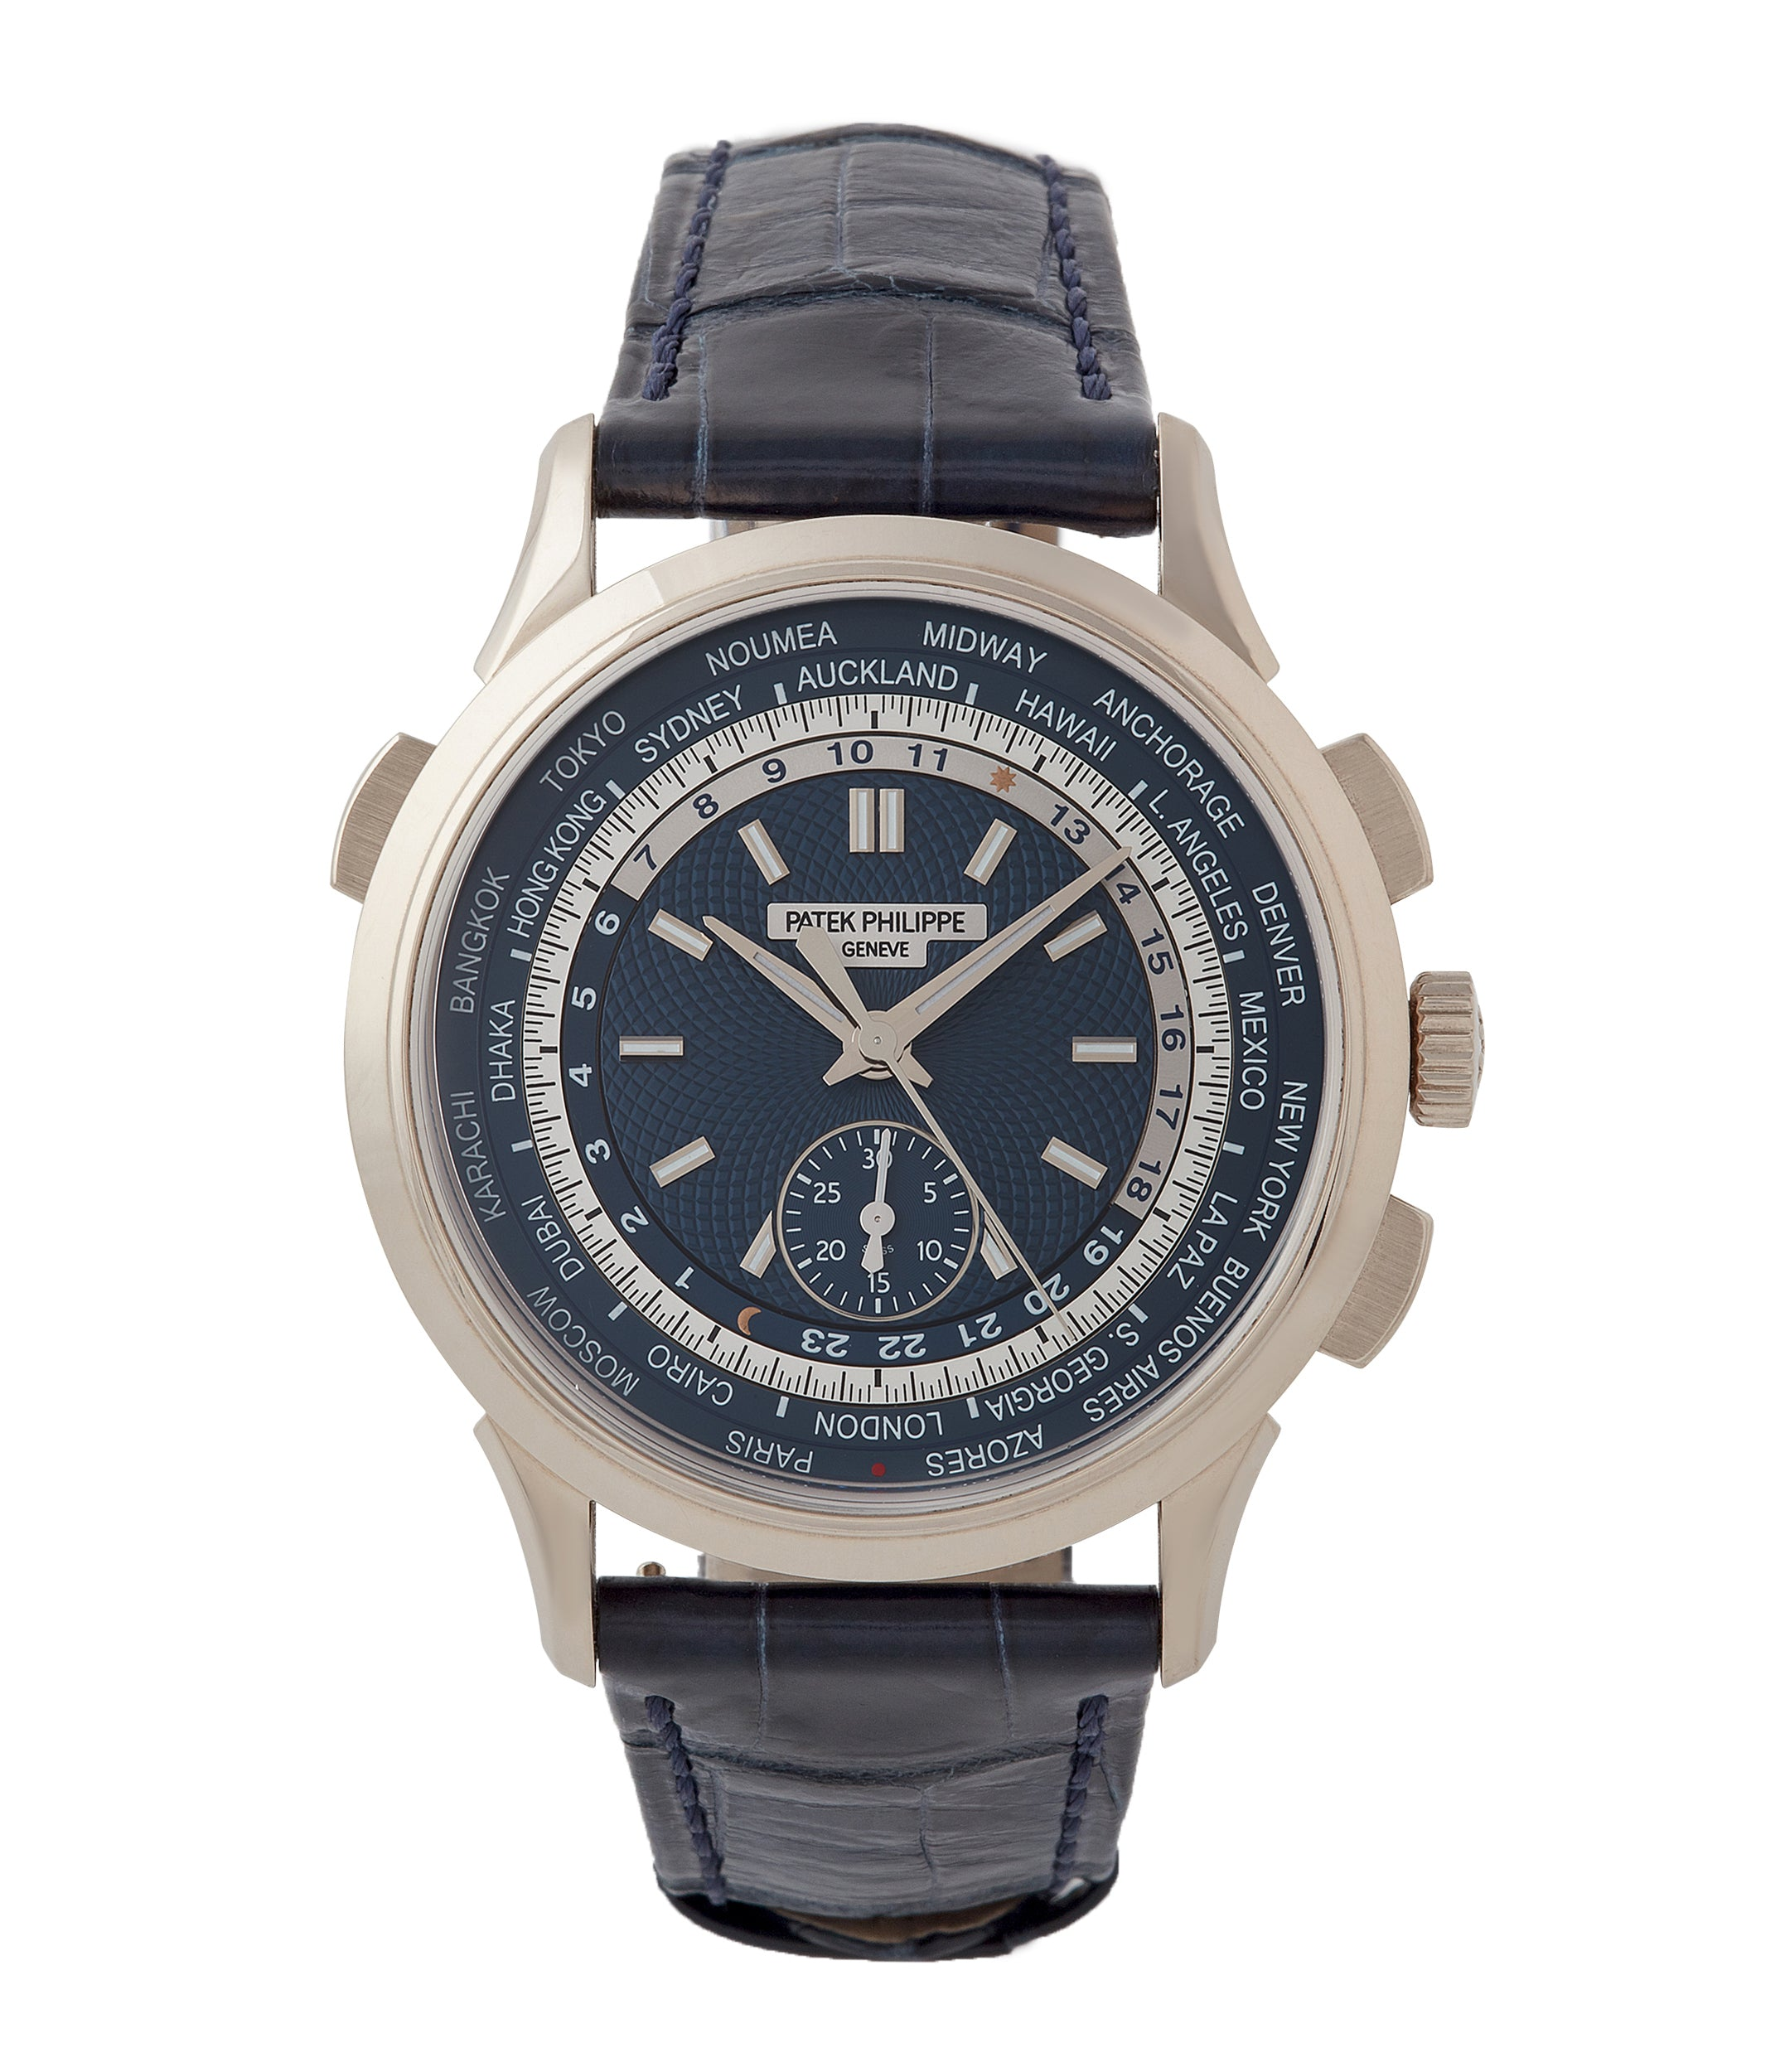 buy Patek Philippe Complications World Time Chronograph 5930G-001 white gold pre-owned watch blue dial for sale online at A Collected Man London